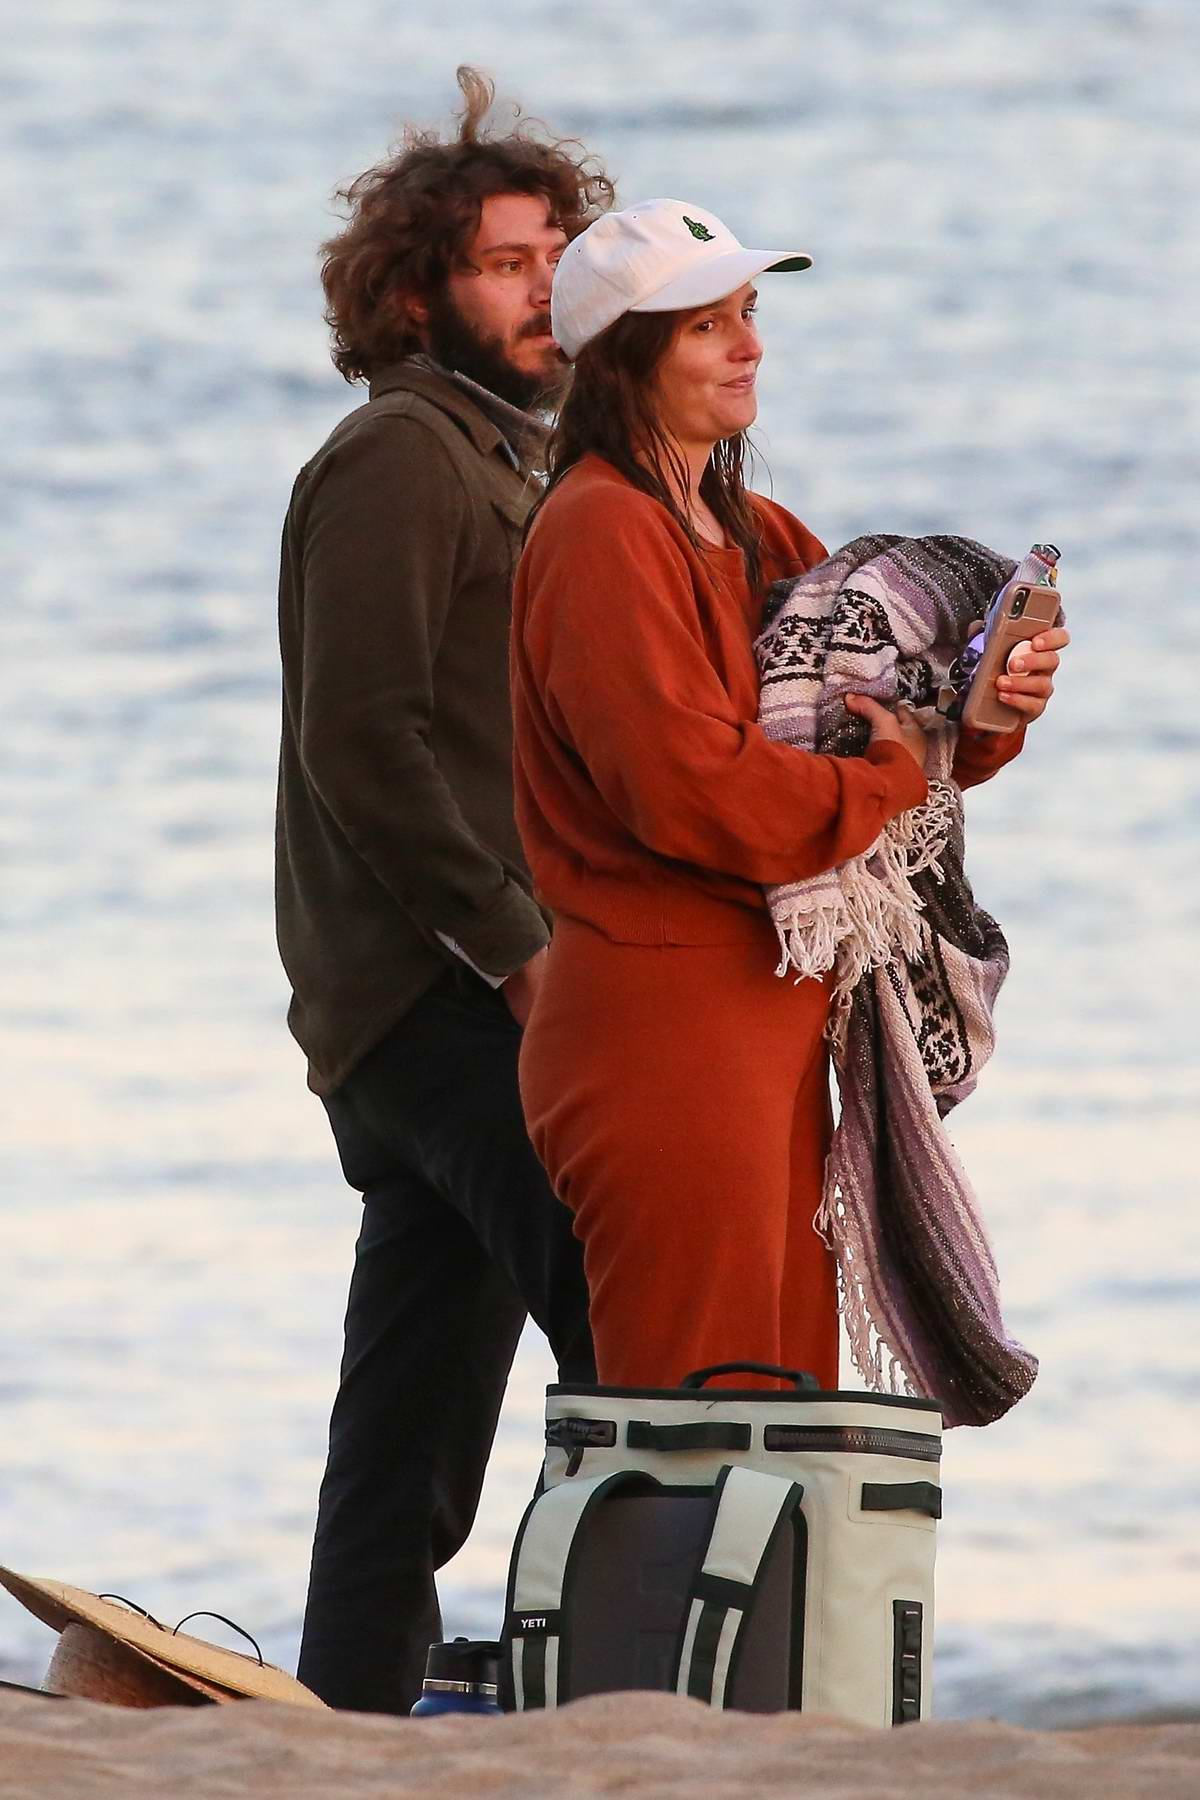 Leighton Meester and Adam Brody enjoy an romantic afternoon at the beach in Malibu, California